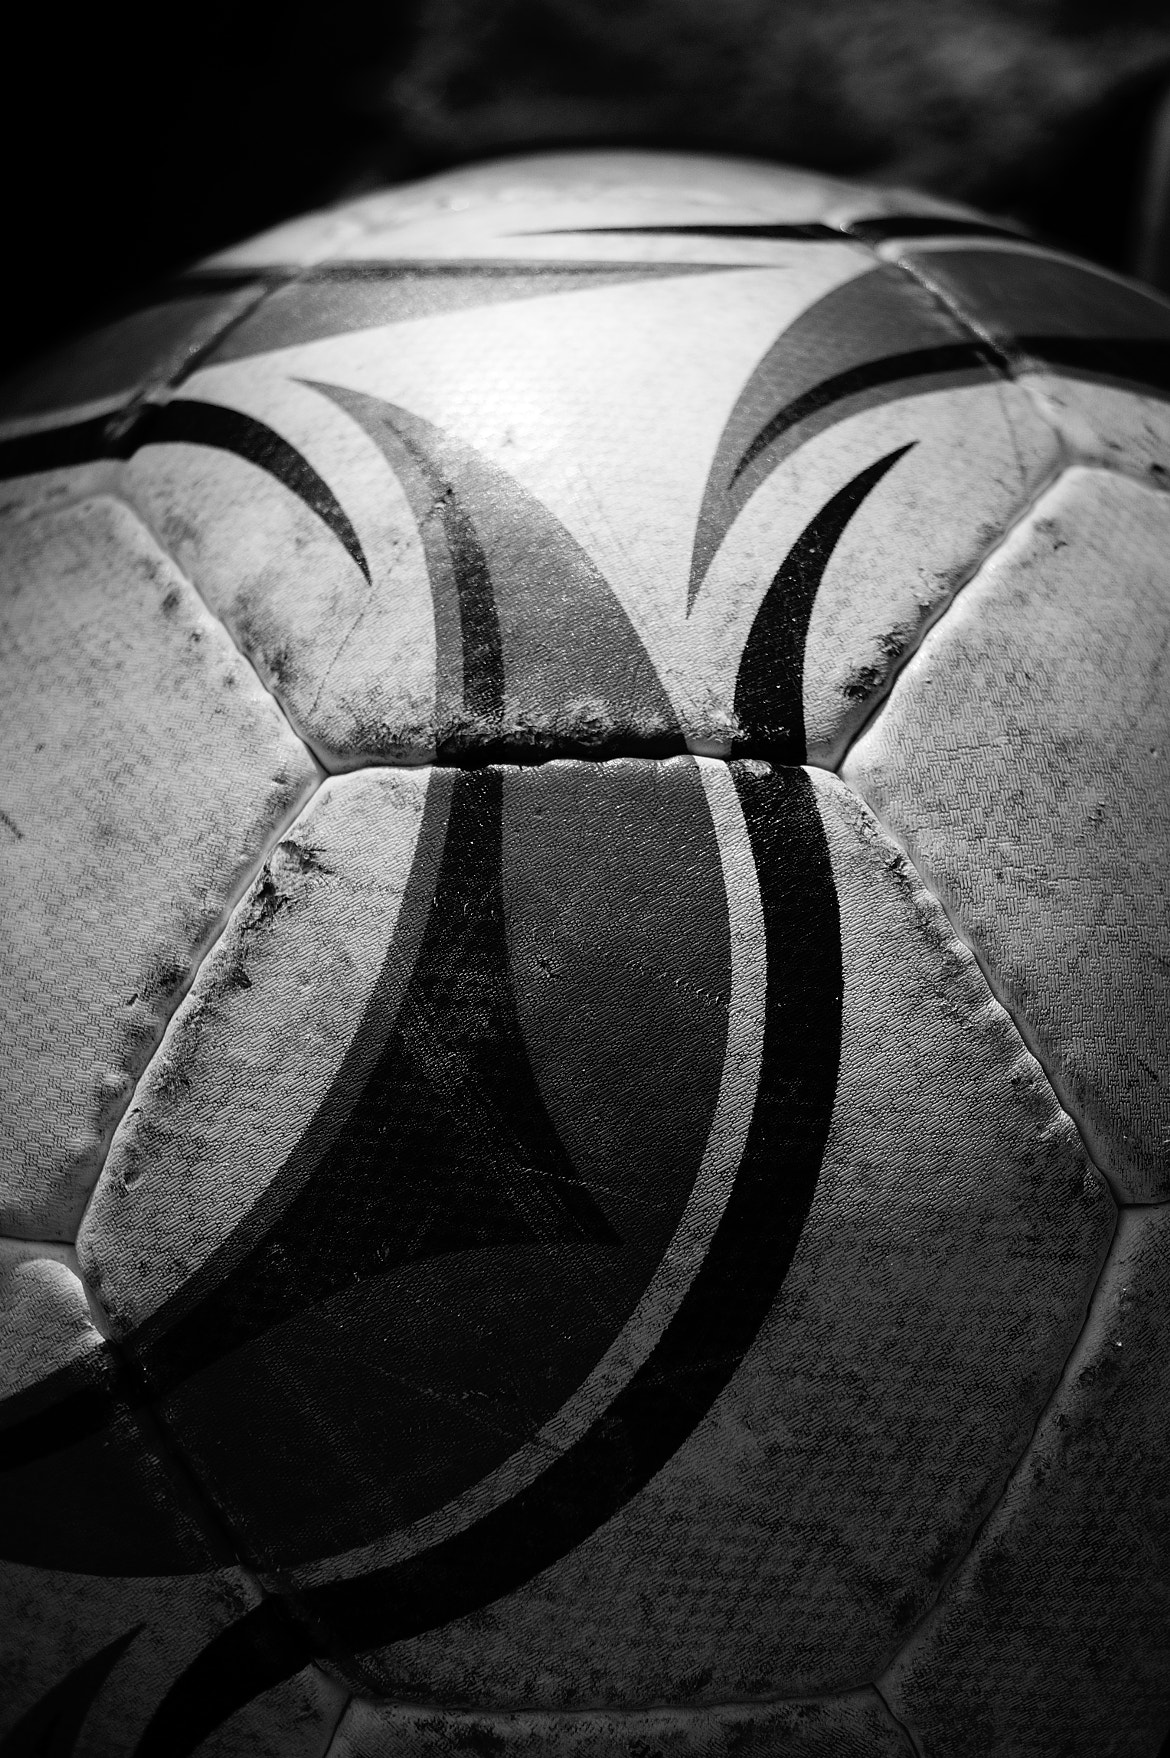 Photograph Football by Kristof Eperjesy on 500px